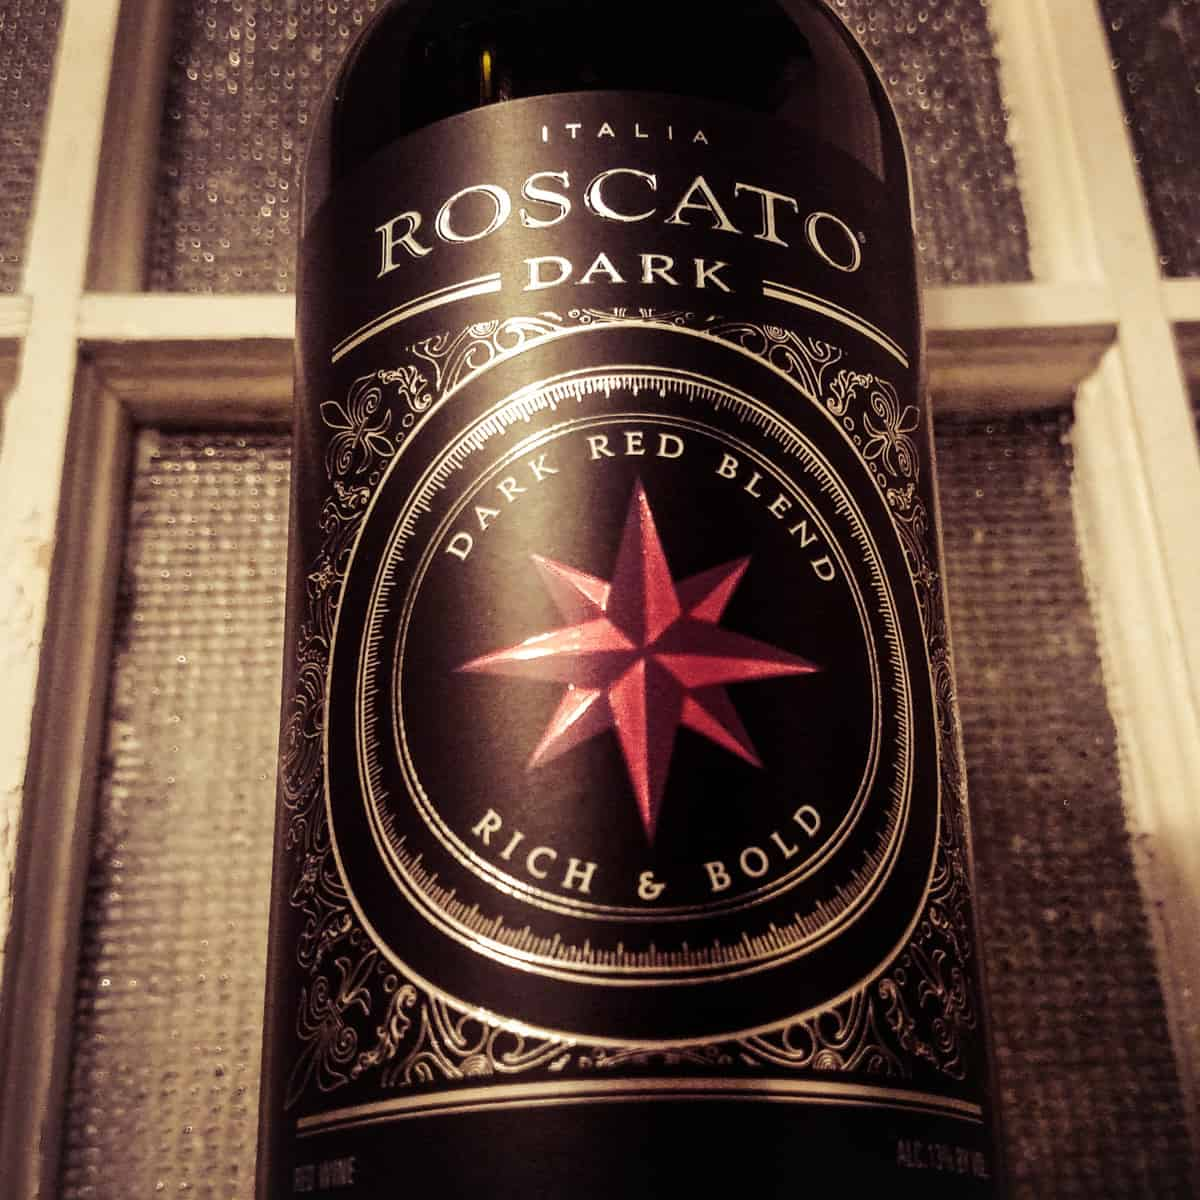 roscato-dark-dark-red-blend-trentino-italy-100